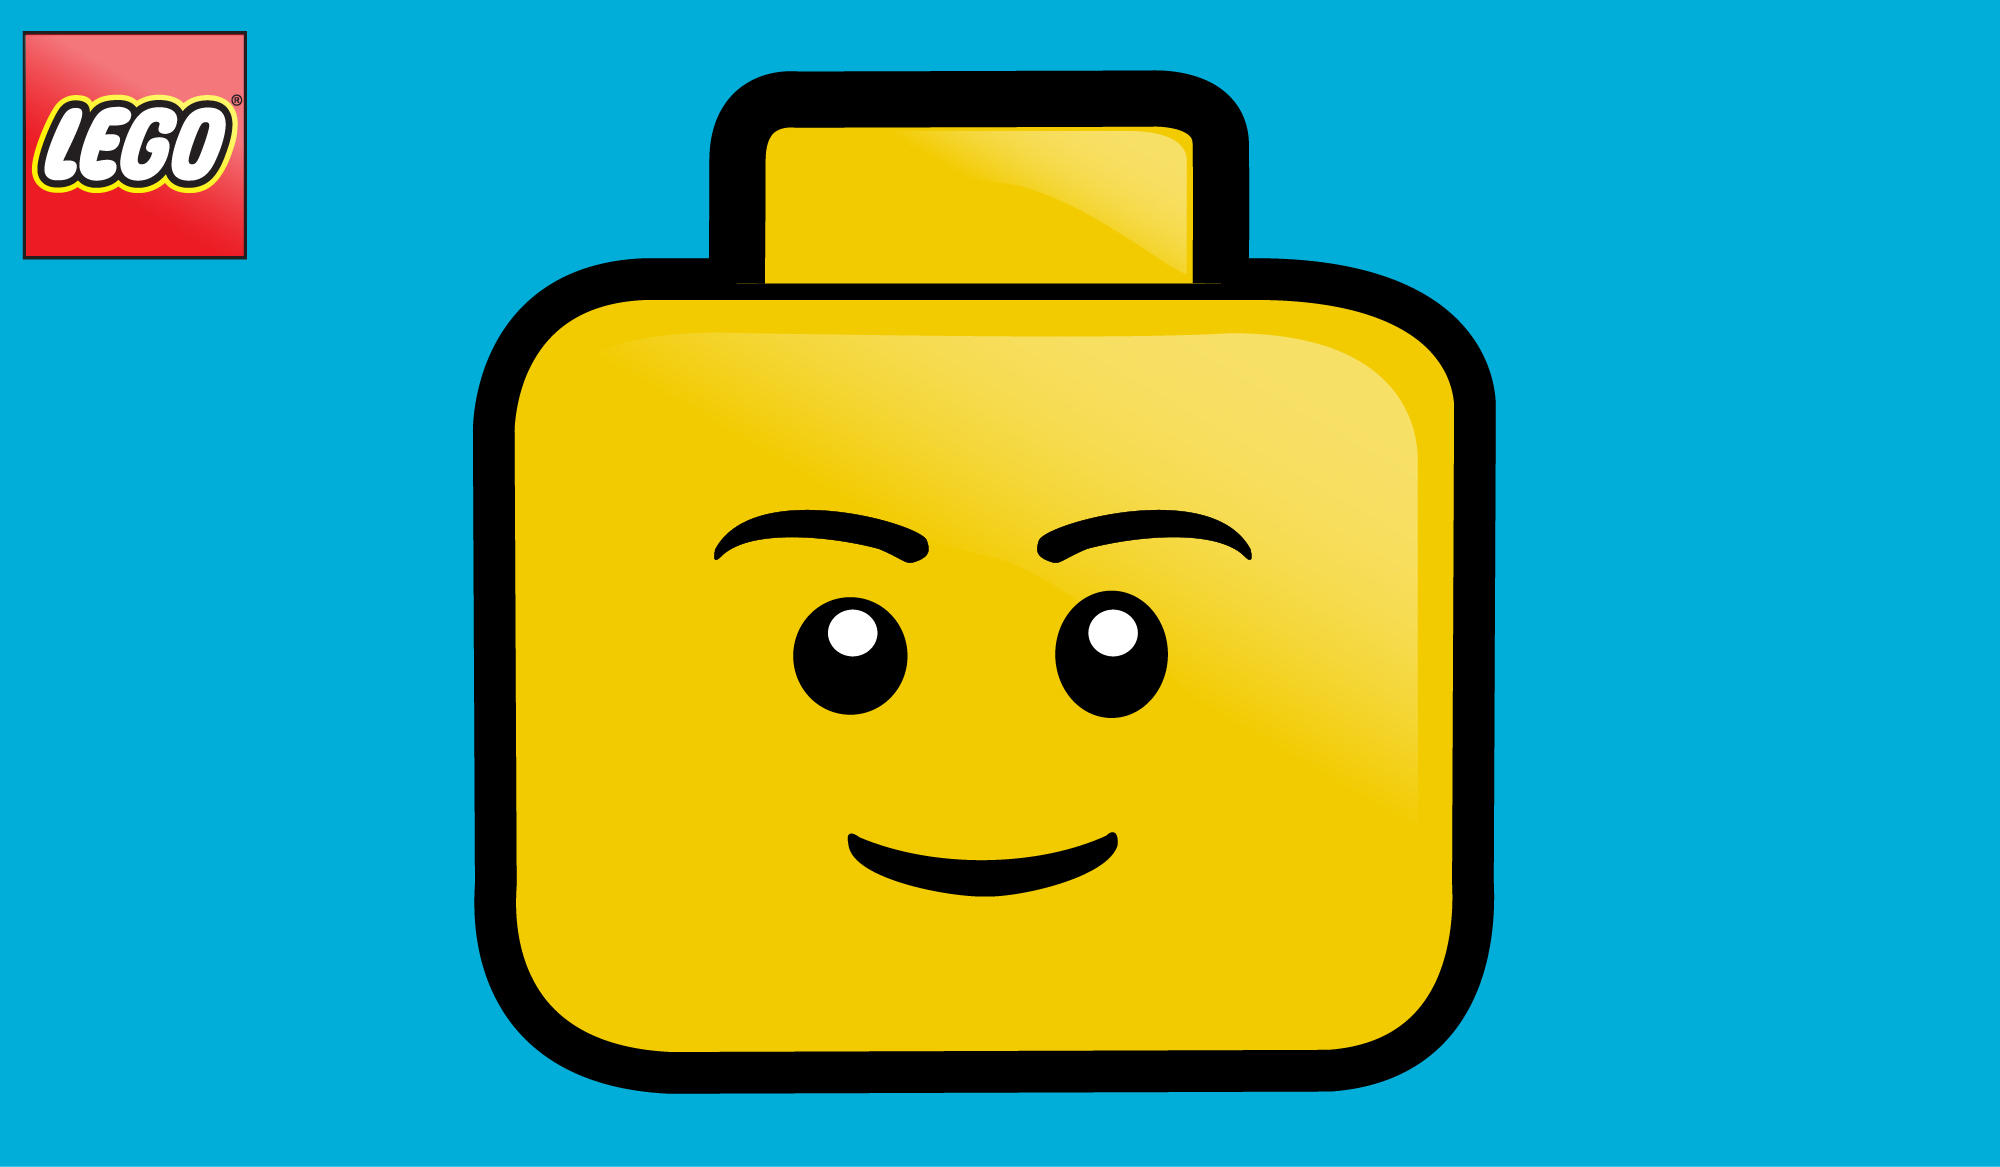 image lego minifigures face - photo #45